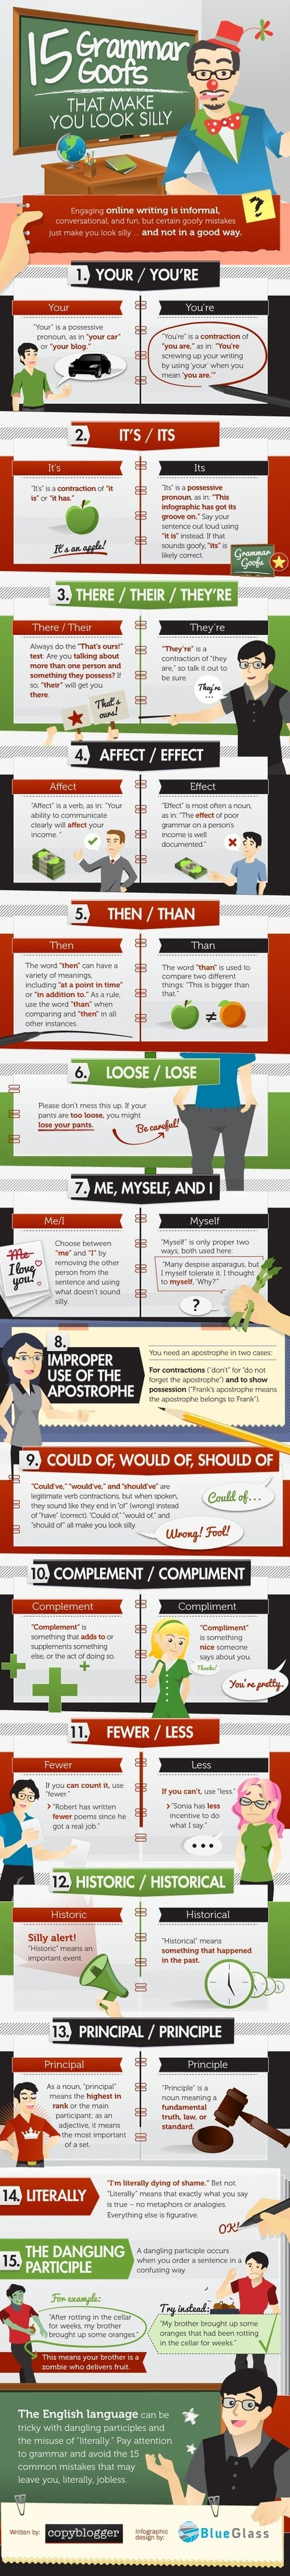 15 grammar goofs that make you look silly [infographic] | Search Engine Marketing Trends | Scoop.it